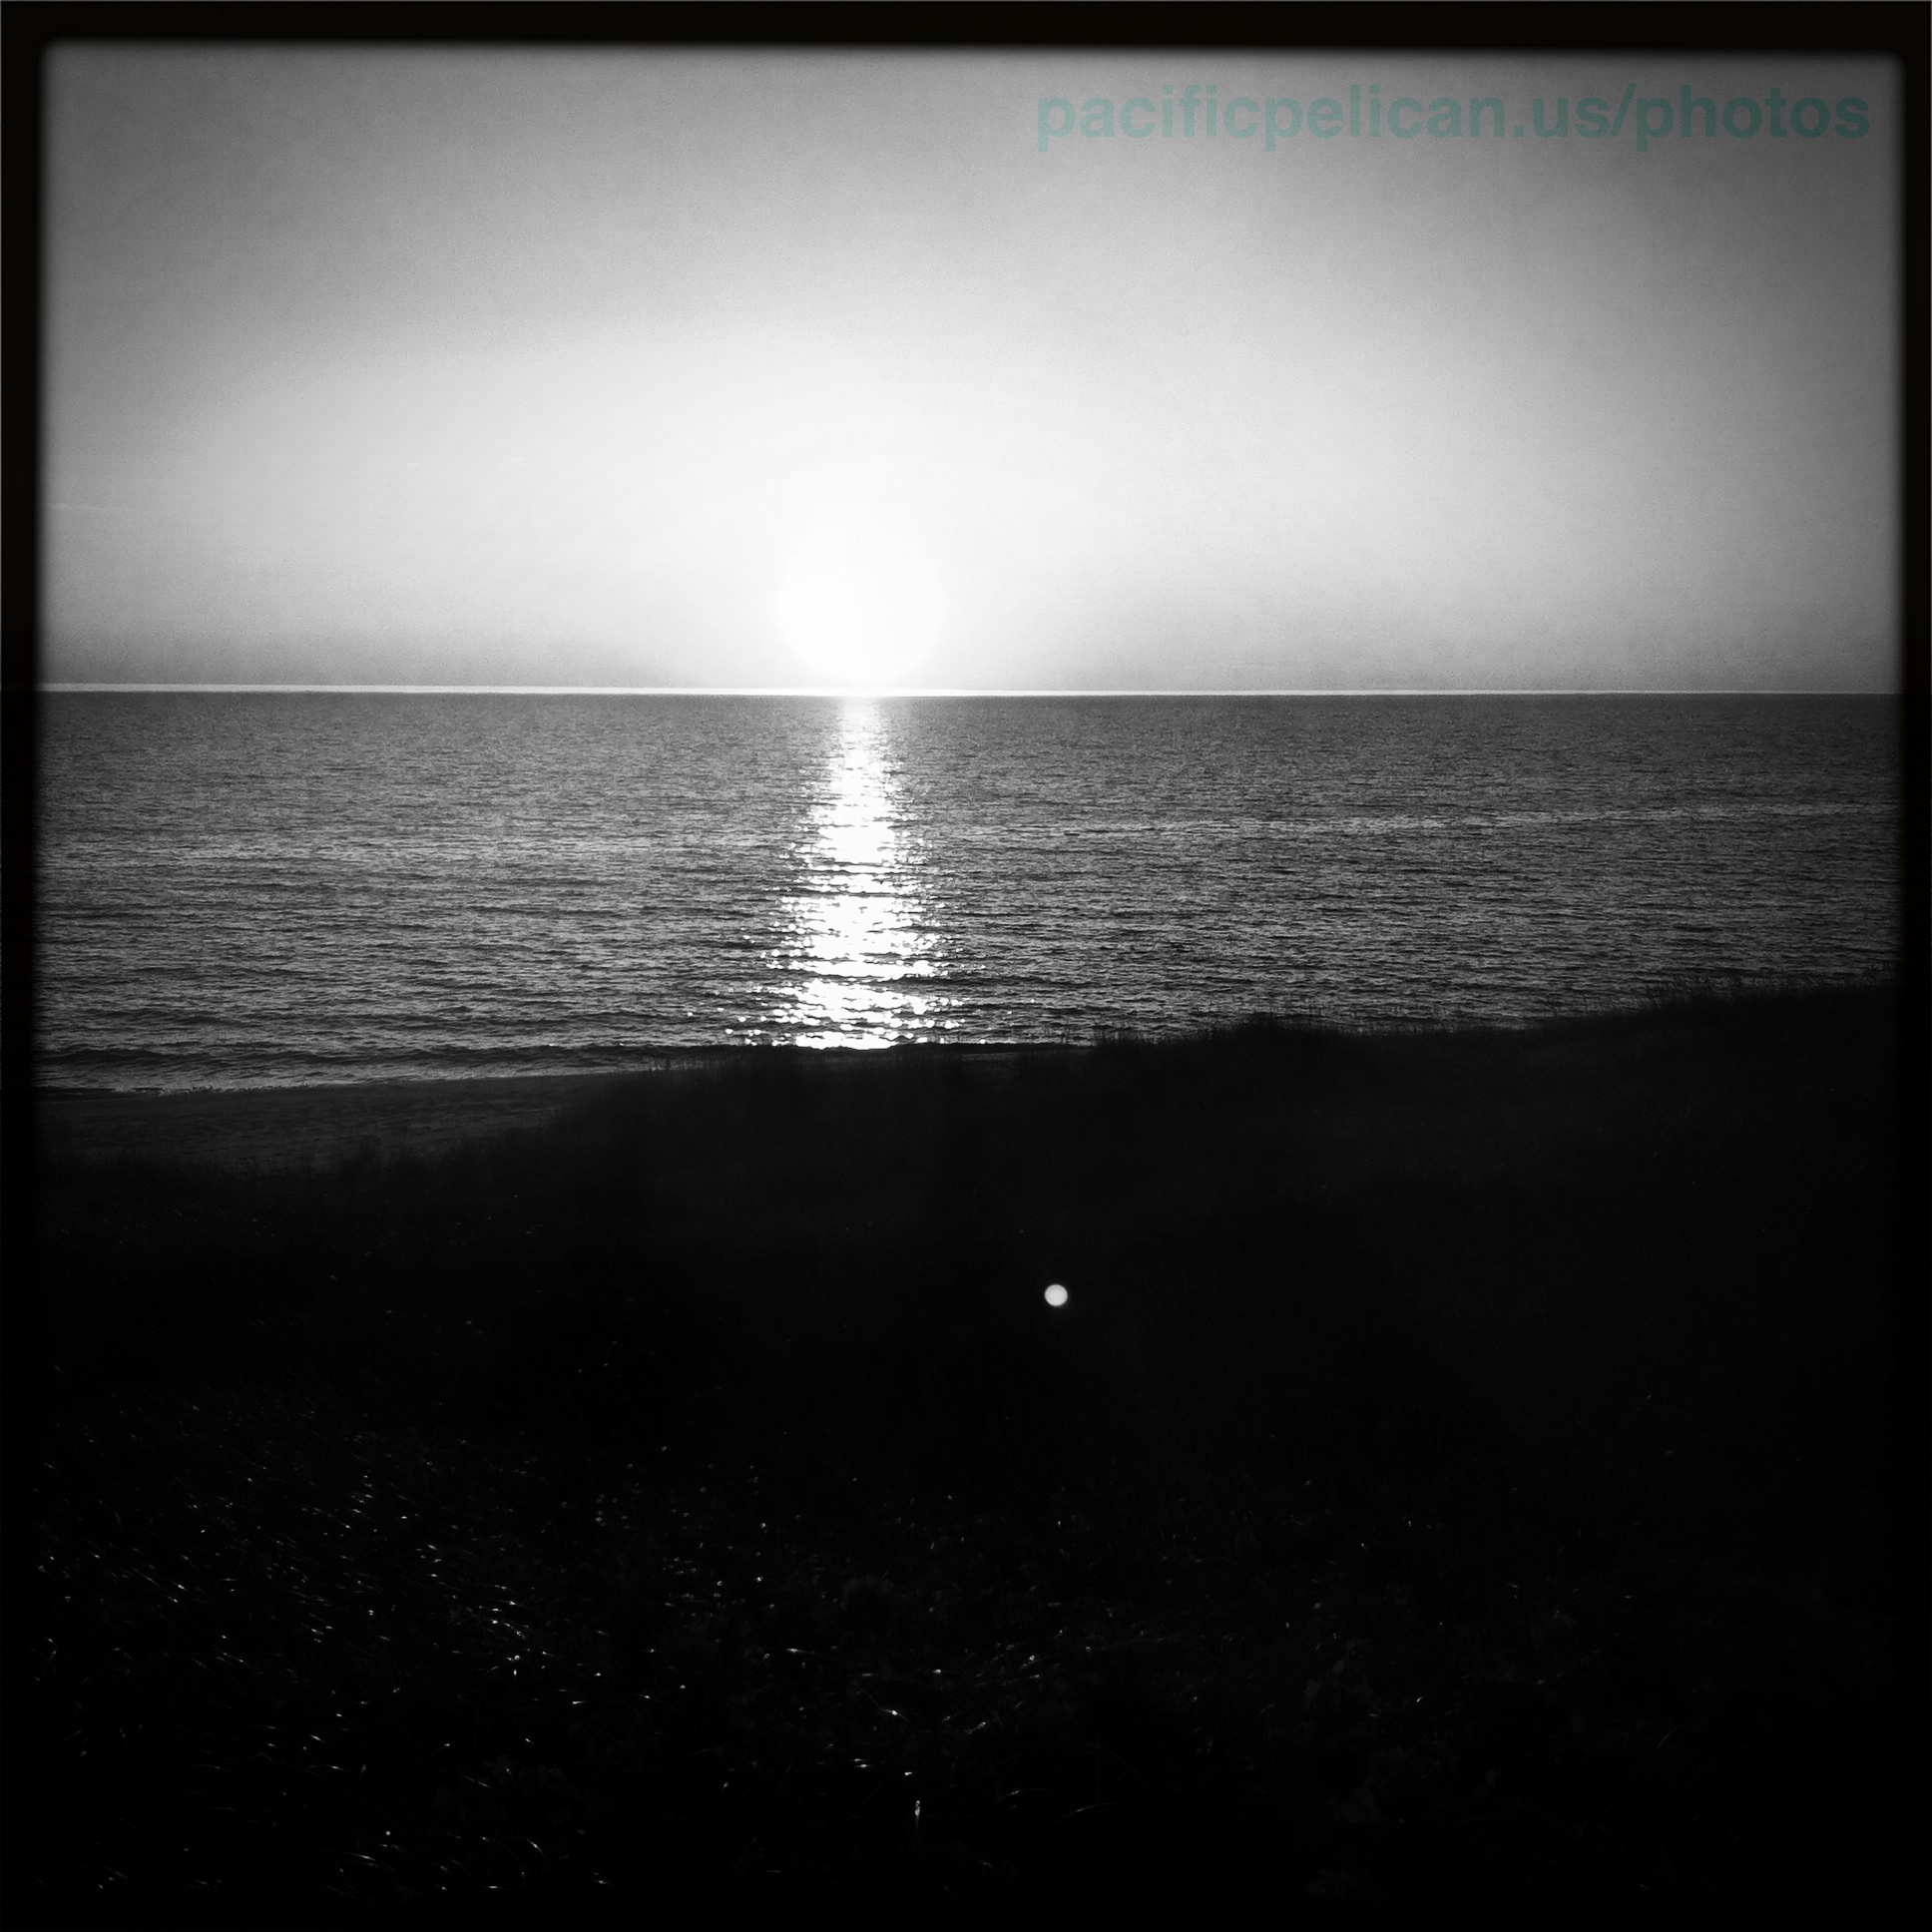 Lake michigan sunset black and white pacificpelican us photos